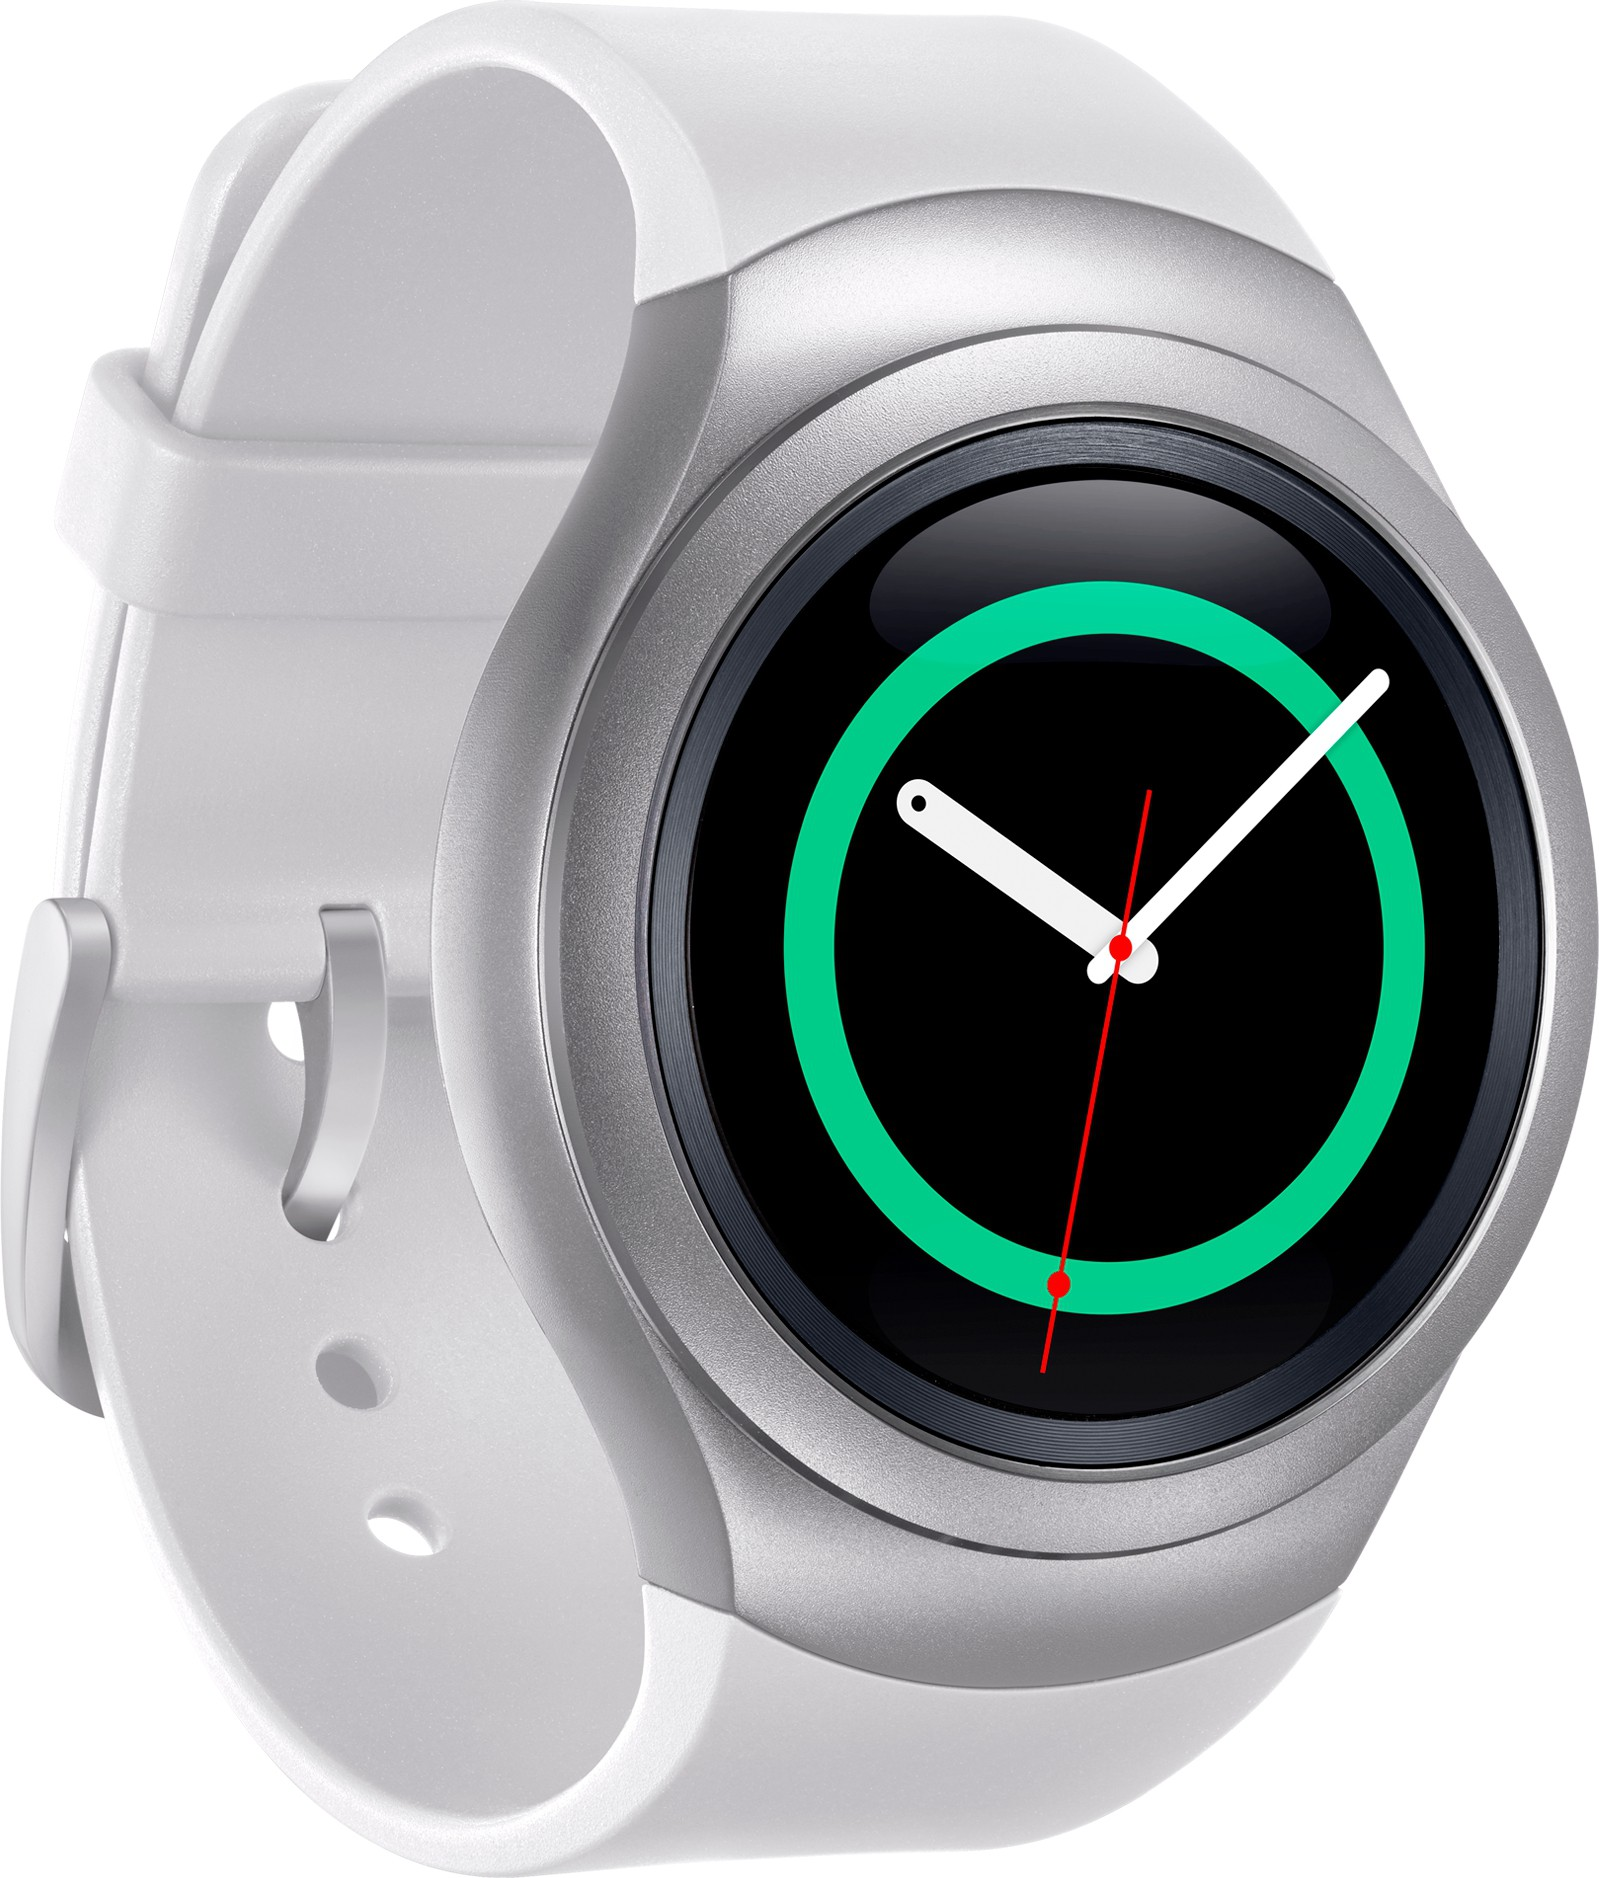 Deals - Chennai - Samsung Gear S2 <br> Heartrate Monitor<br> Category - wearable_smart_devices<br> Business - Flipkart.com